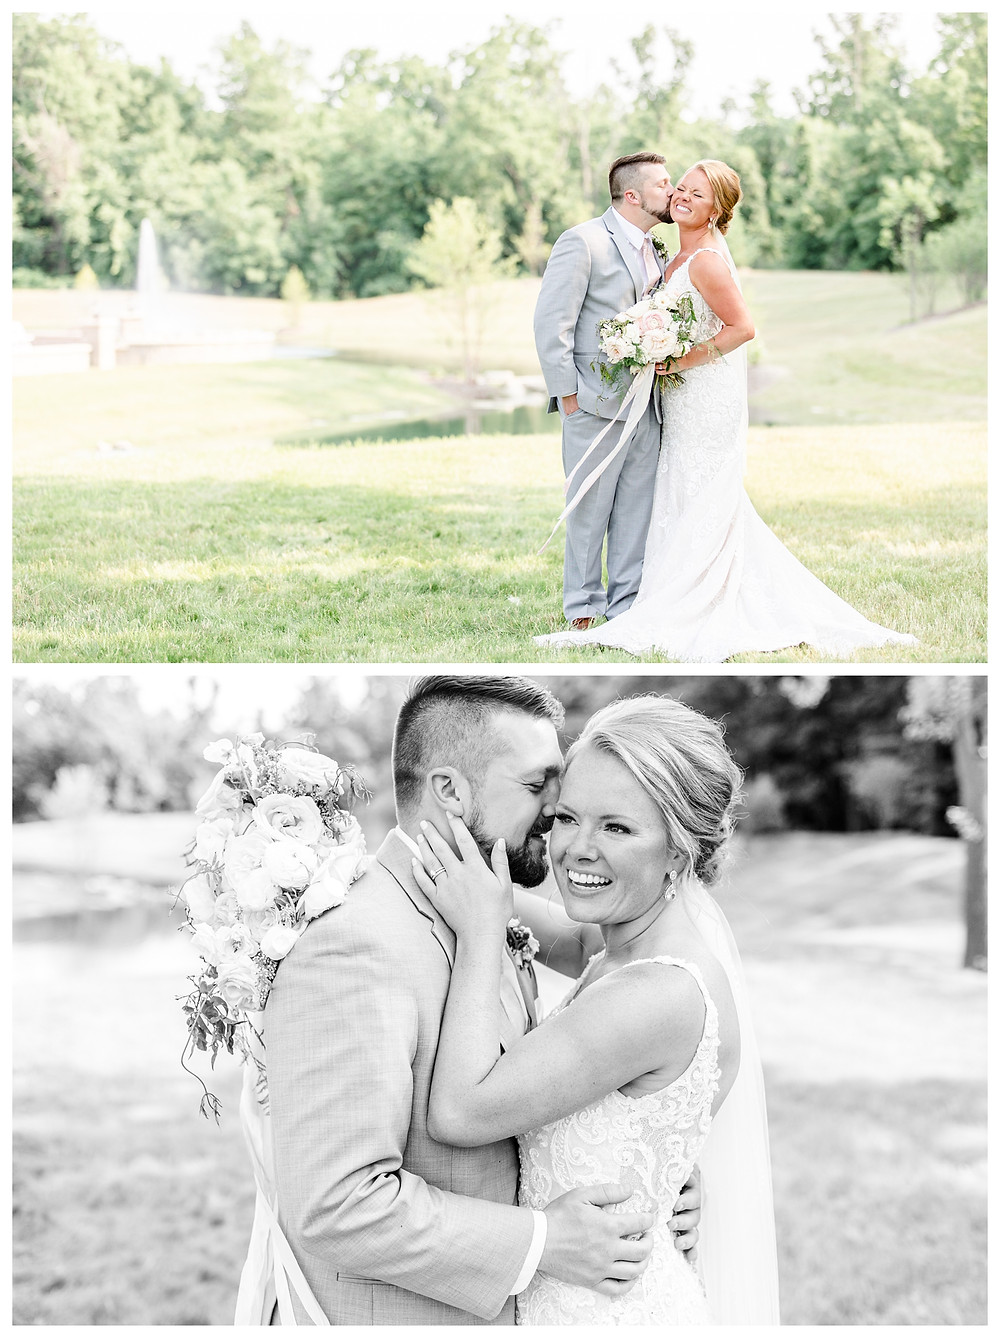 Josh and Andrea light airy joyful style wedding photography husband and wife photographer team michigan pictures photo shoot poses spring bride and groom White Oak Farm Venue